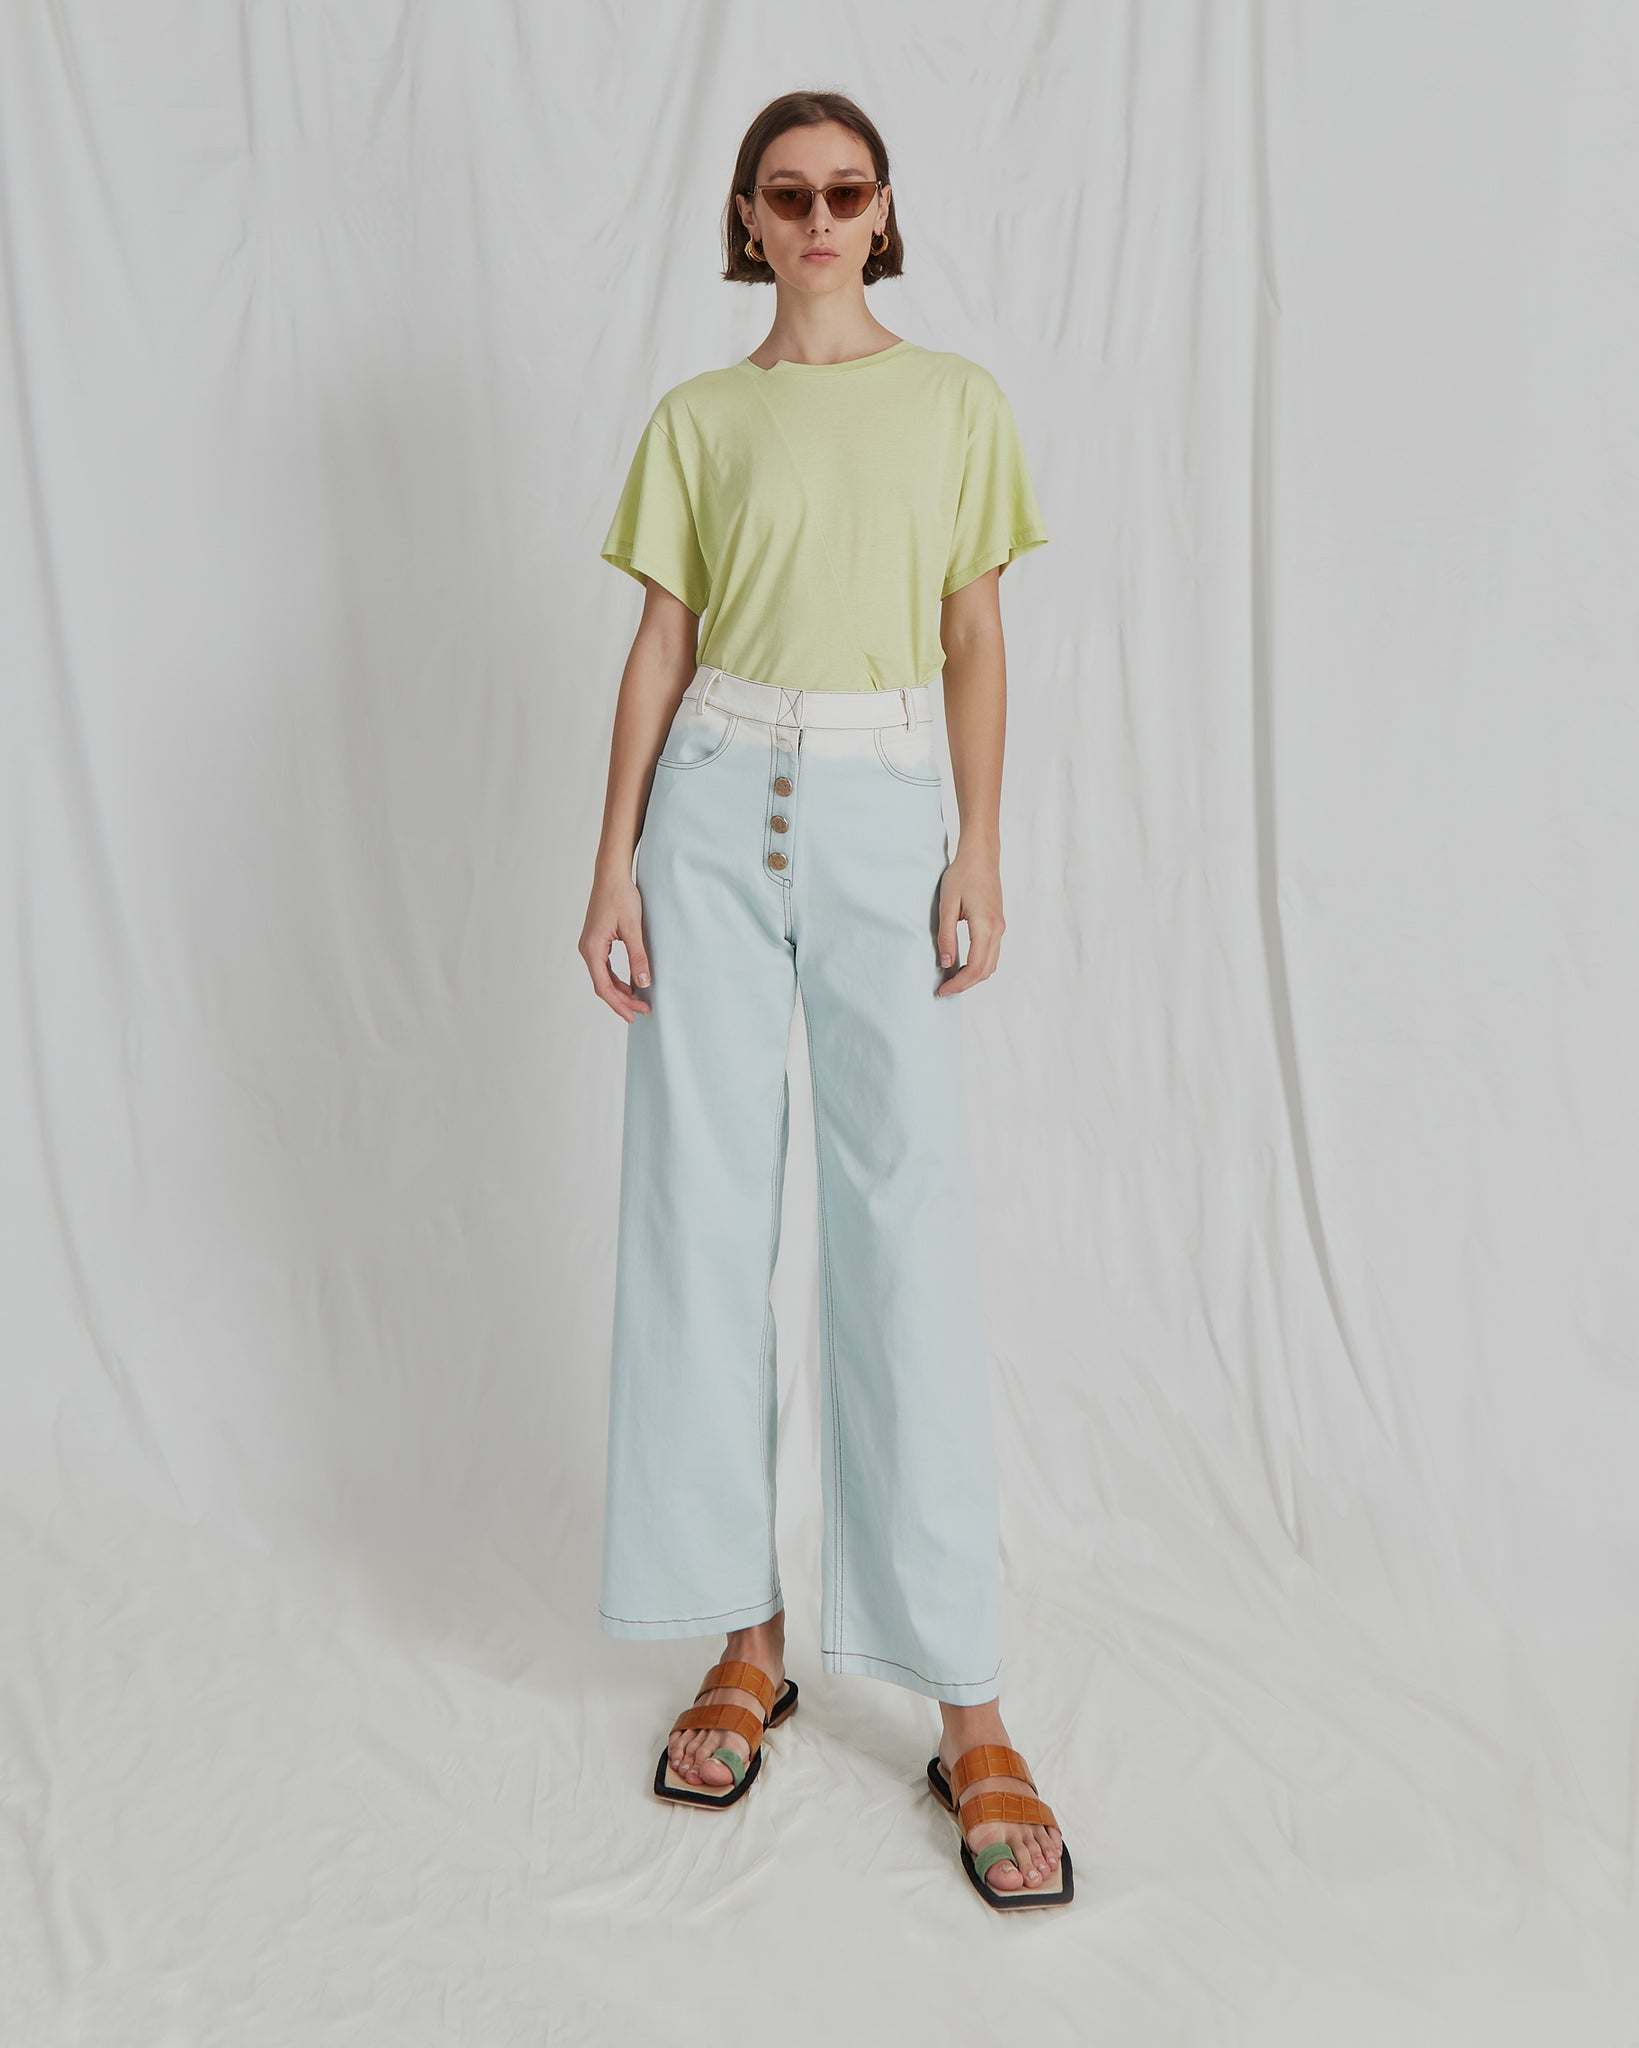 Valerie Jeans Cotton Denim Ombre Skyblue